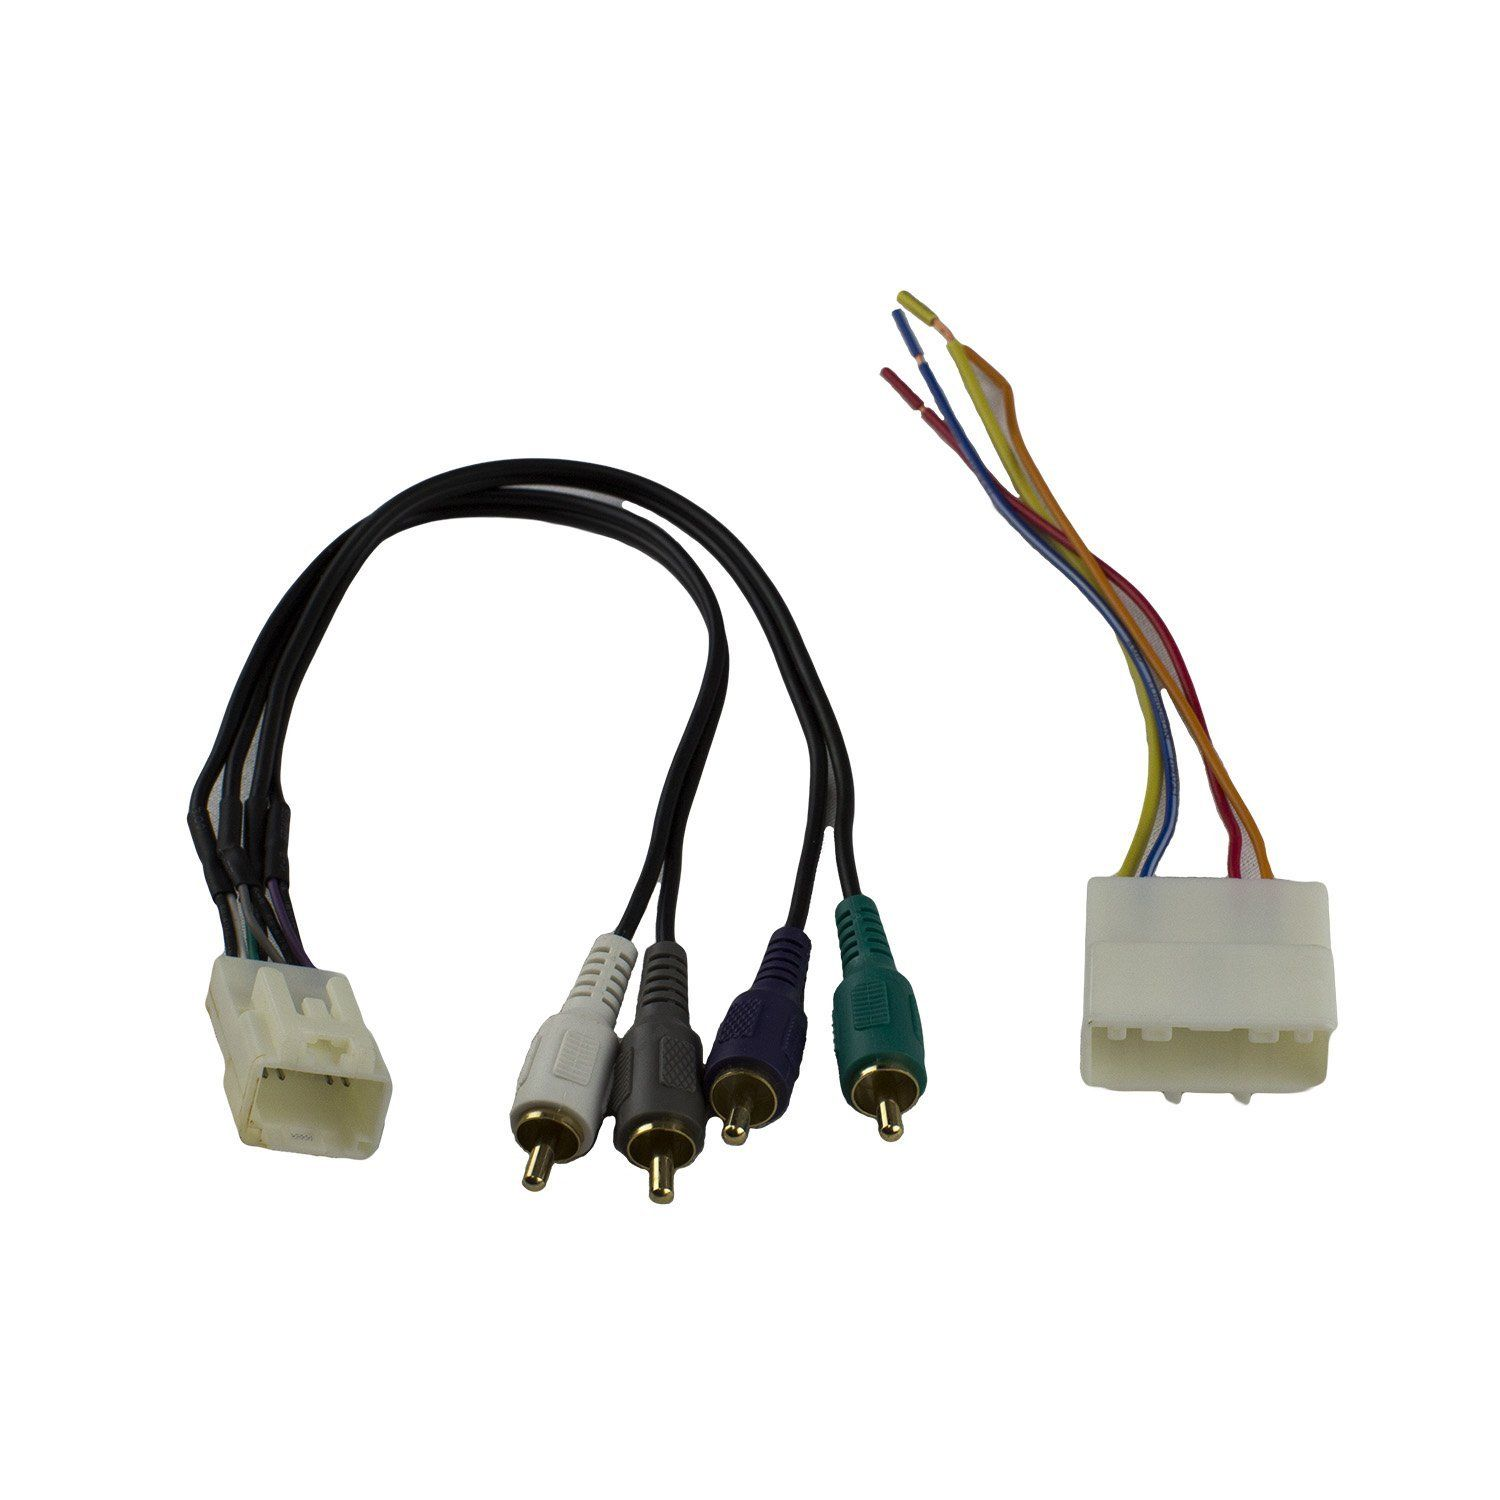 Novosonics Nnf 7554 Wiring Harness For Nissan 2007 Up Subaru 2008 Connectors Connect An Aftermarket Stereo To Your Car No Cutting Existing Required